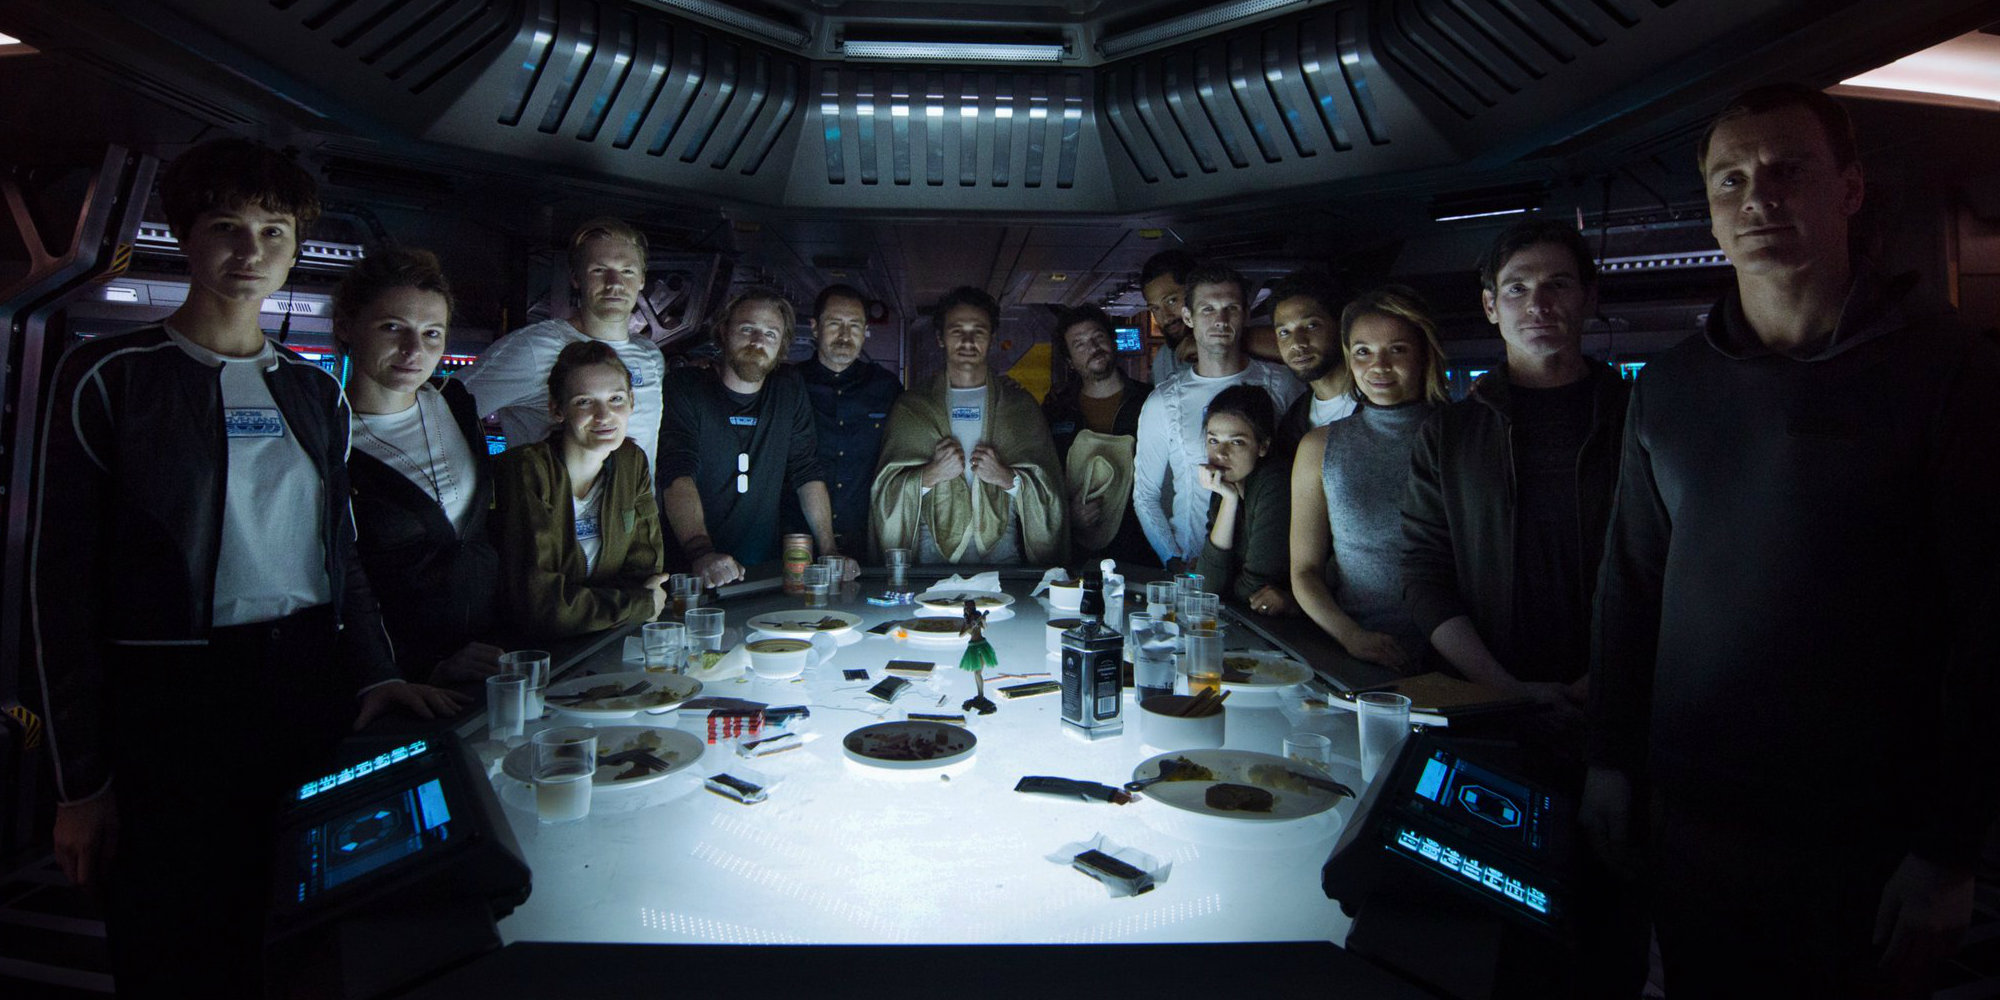 Alien: Covenant cast photo with James Franco